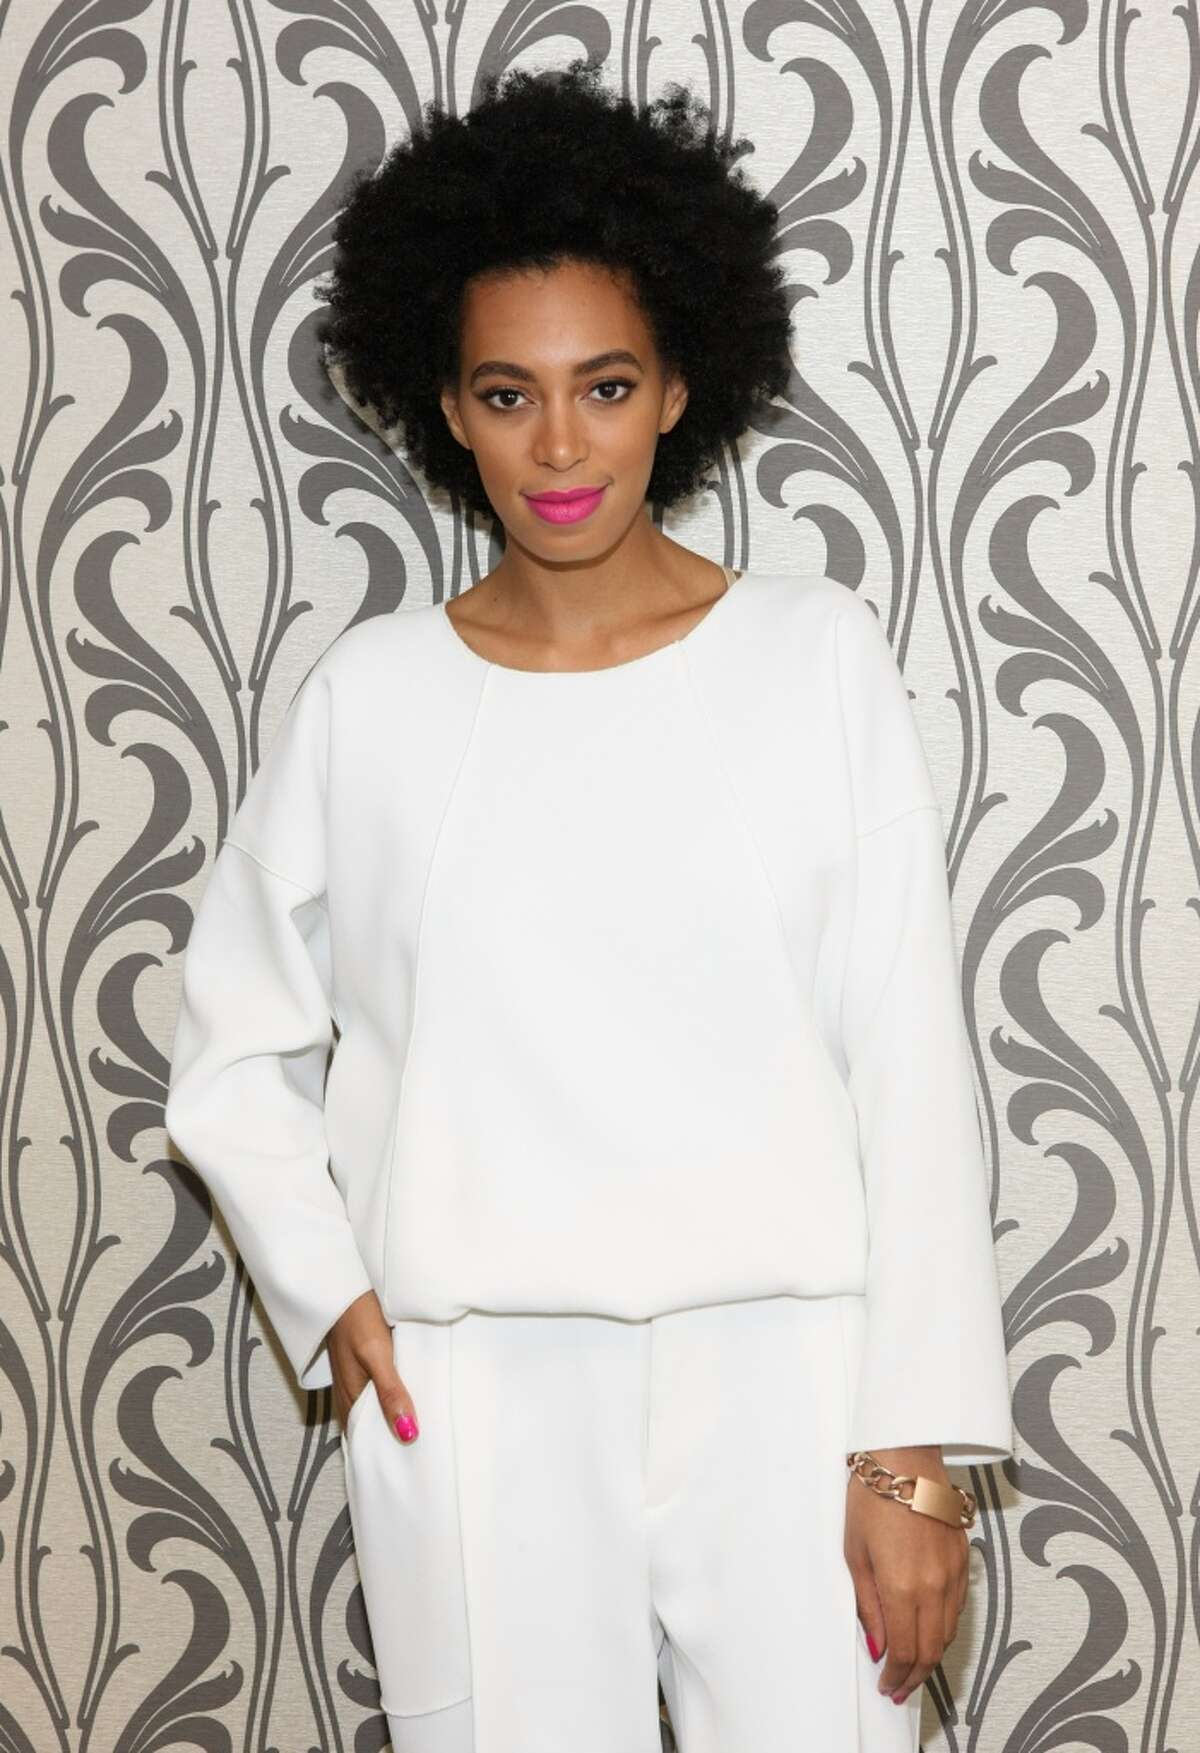 Don't forget about Beyonce's little sis, Solange, who was also born in Houston.